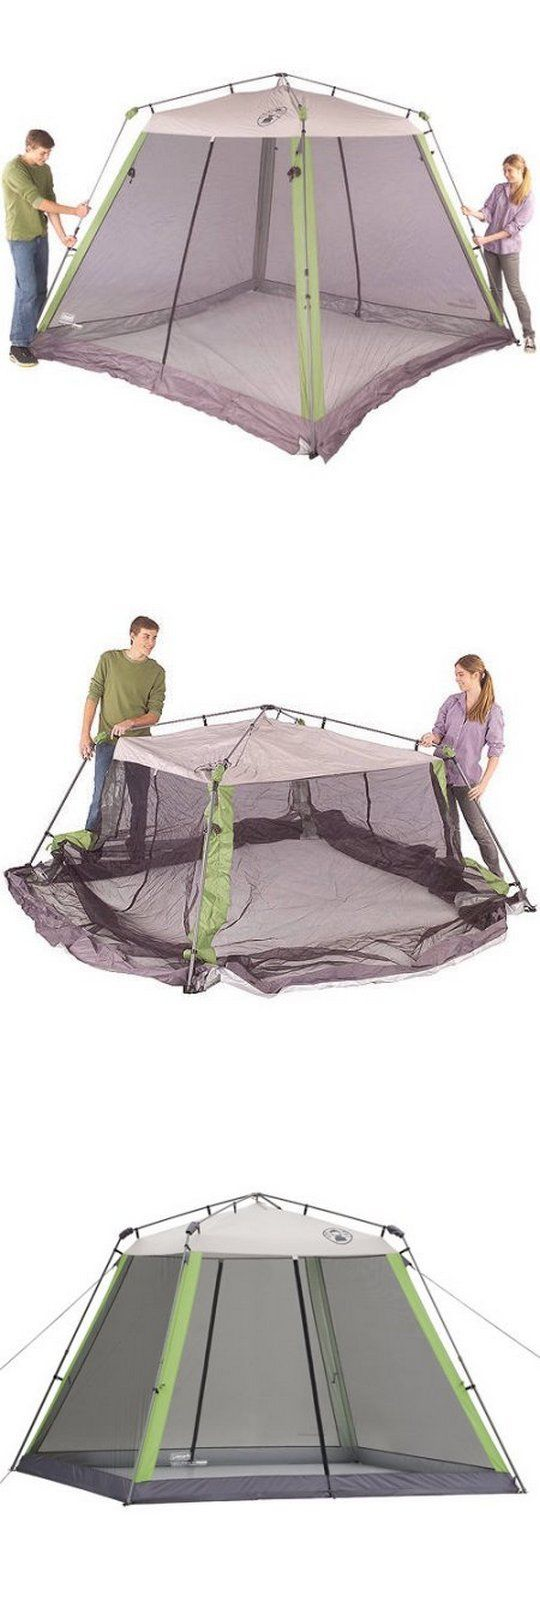 Canopies and Shelters 179011 Coleman 10 X10 C&ing Instant Screen House Tent Shelter Canopy W  sc 1 st  Pinterest & Canopies and Shelters 179011: Coleman 10 X10 Camping Instant ...